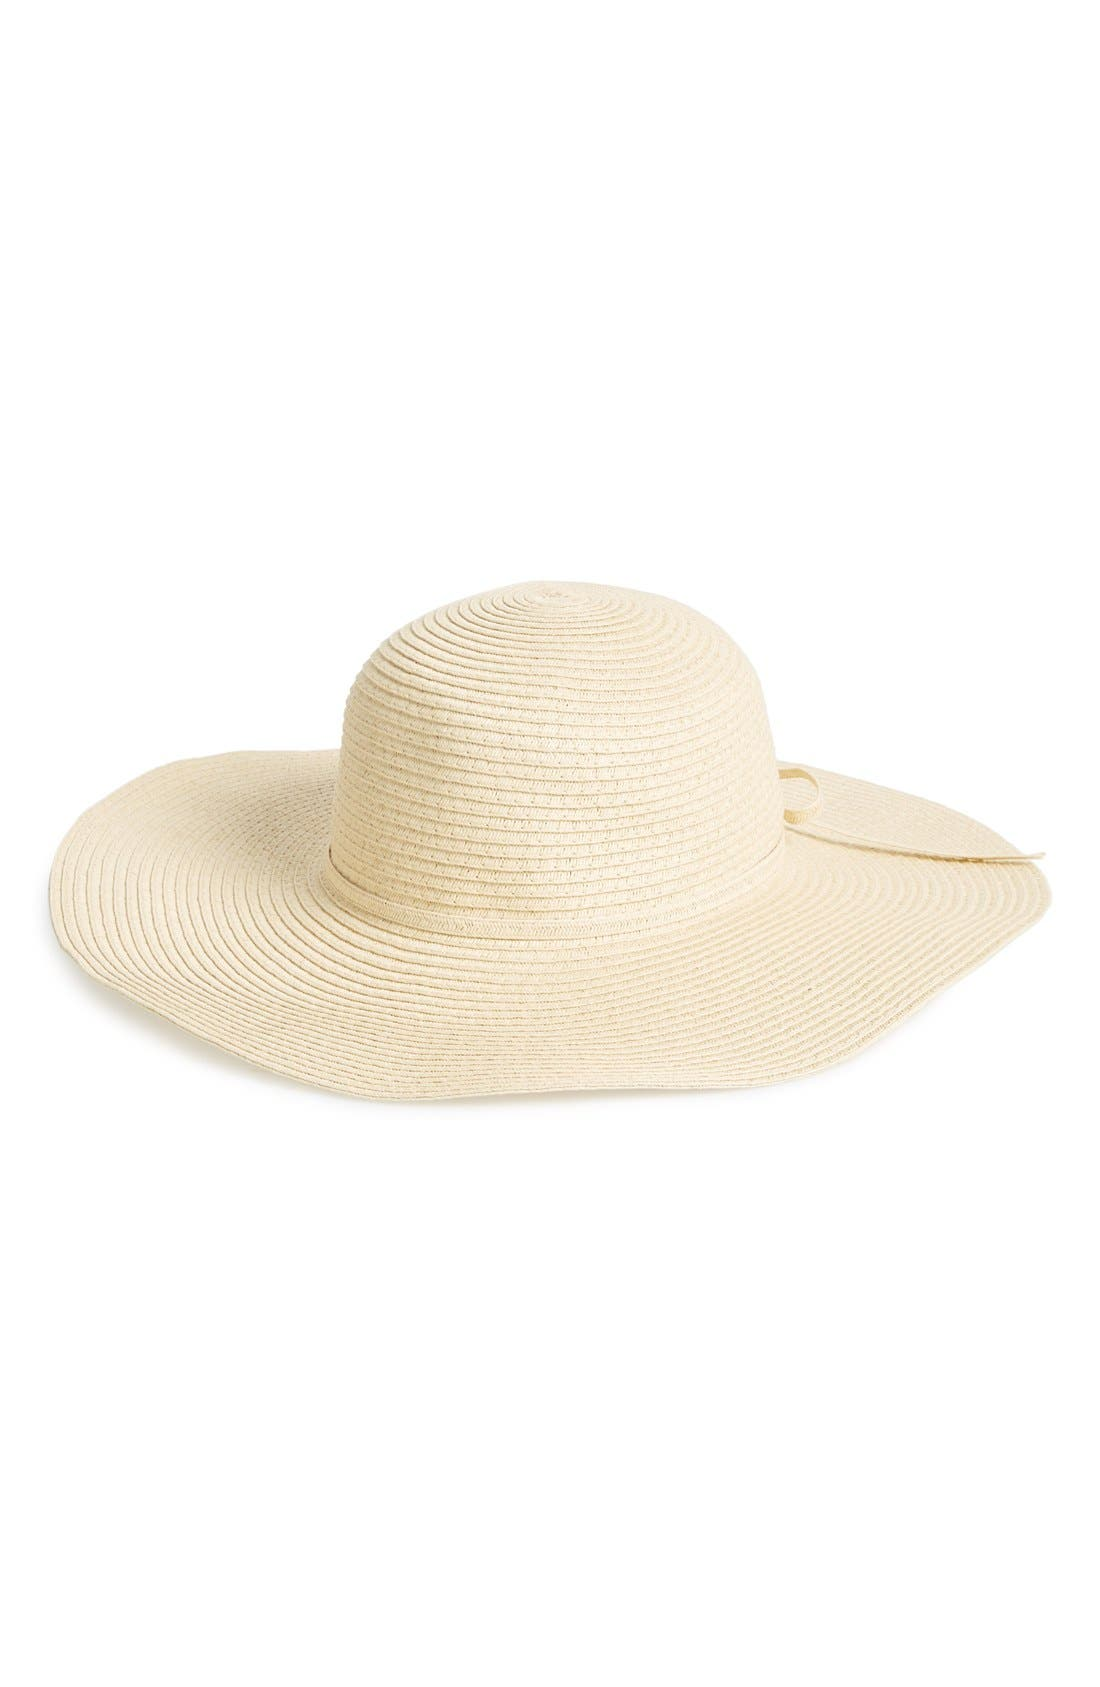 Alternate Image 1 Selected - Amici Accessories Floppy Straw Hat (Juniors)